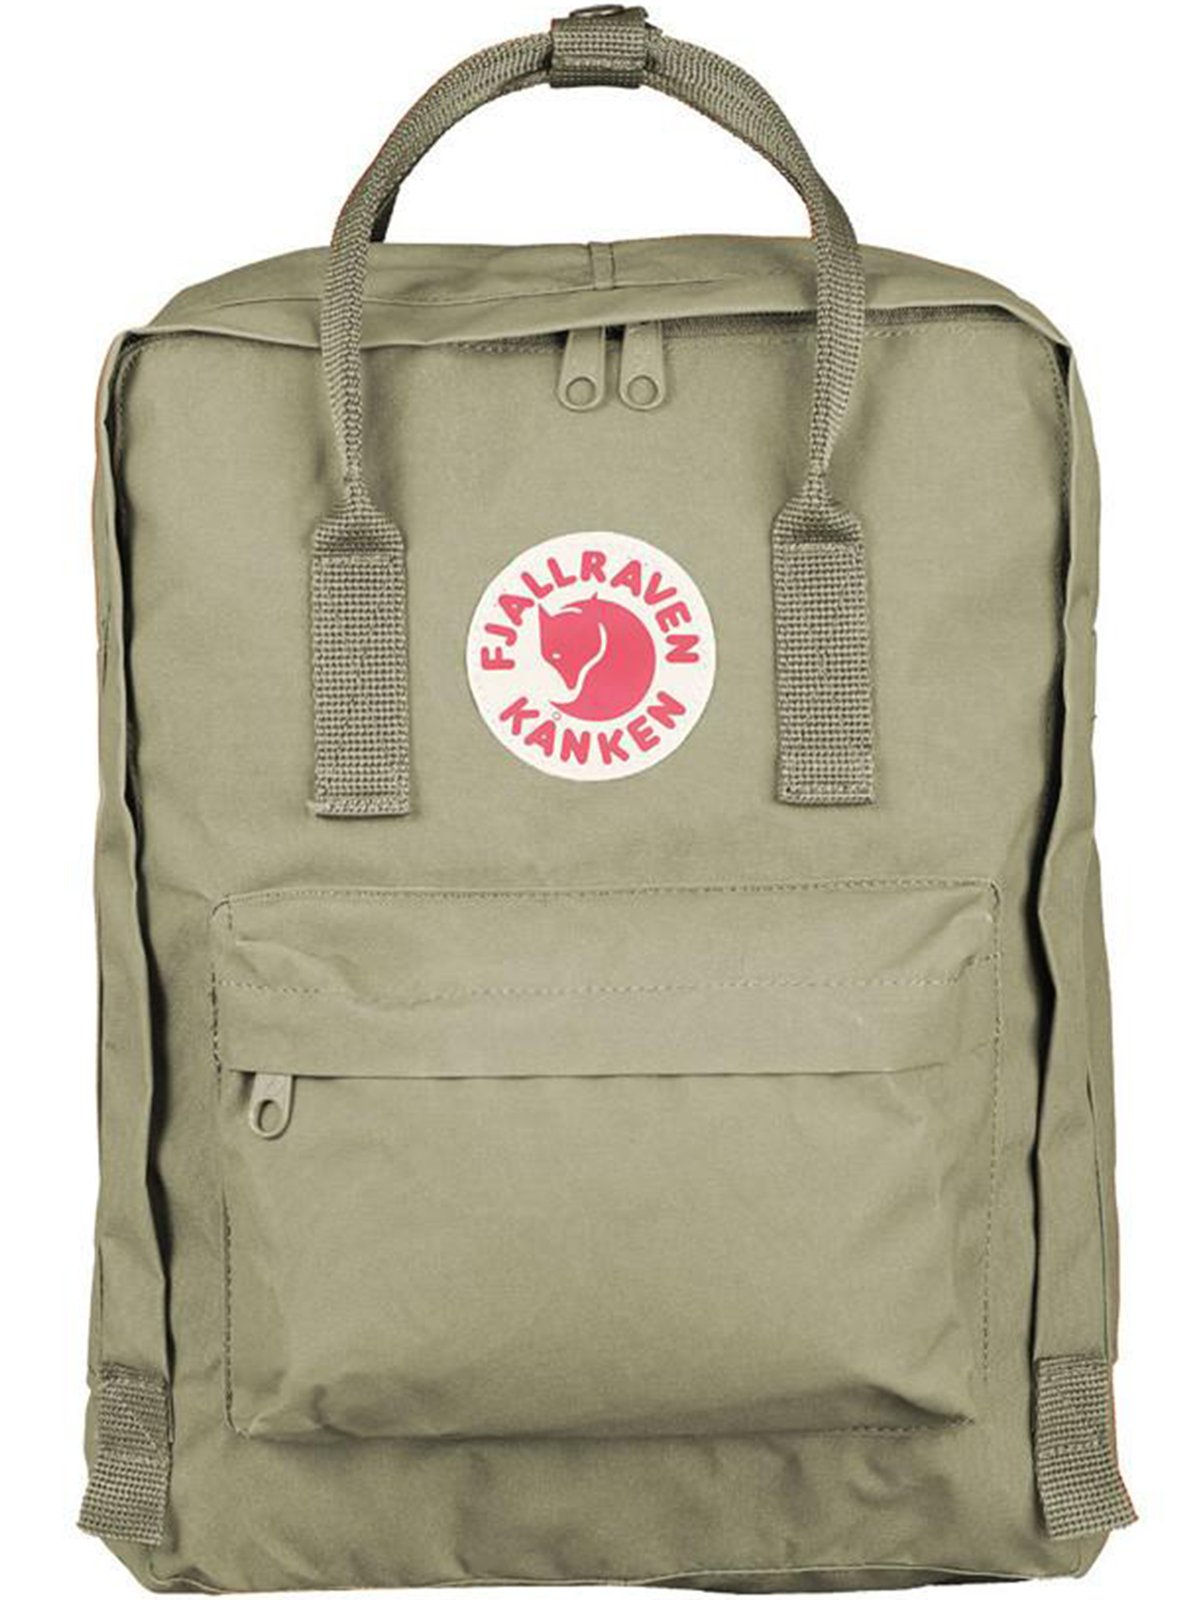 Buy Original Fjallraven Fjallraven Kanken Classic Backpack Putty at ... 39c23942d7